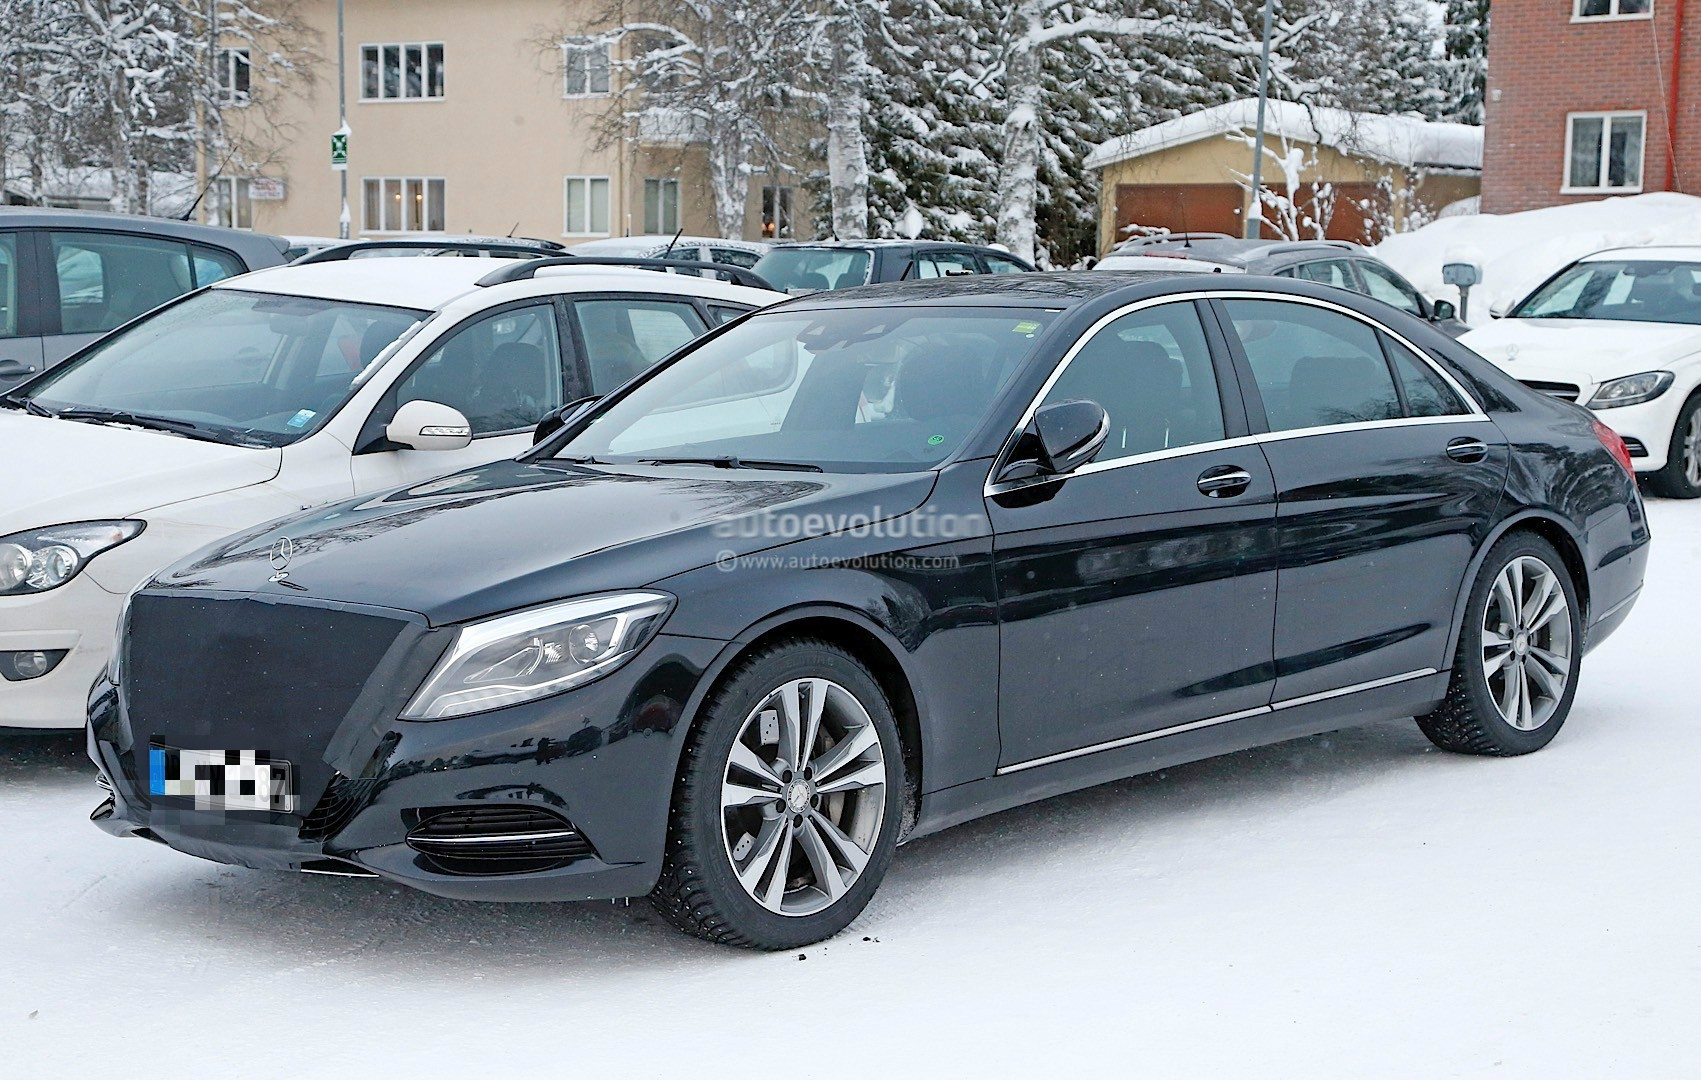 2018 mercedes benz s class facelift shows its headlights for 2018 mercedes benz s550